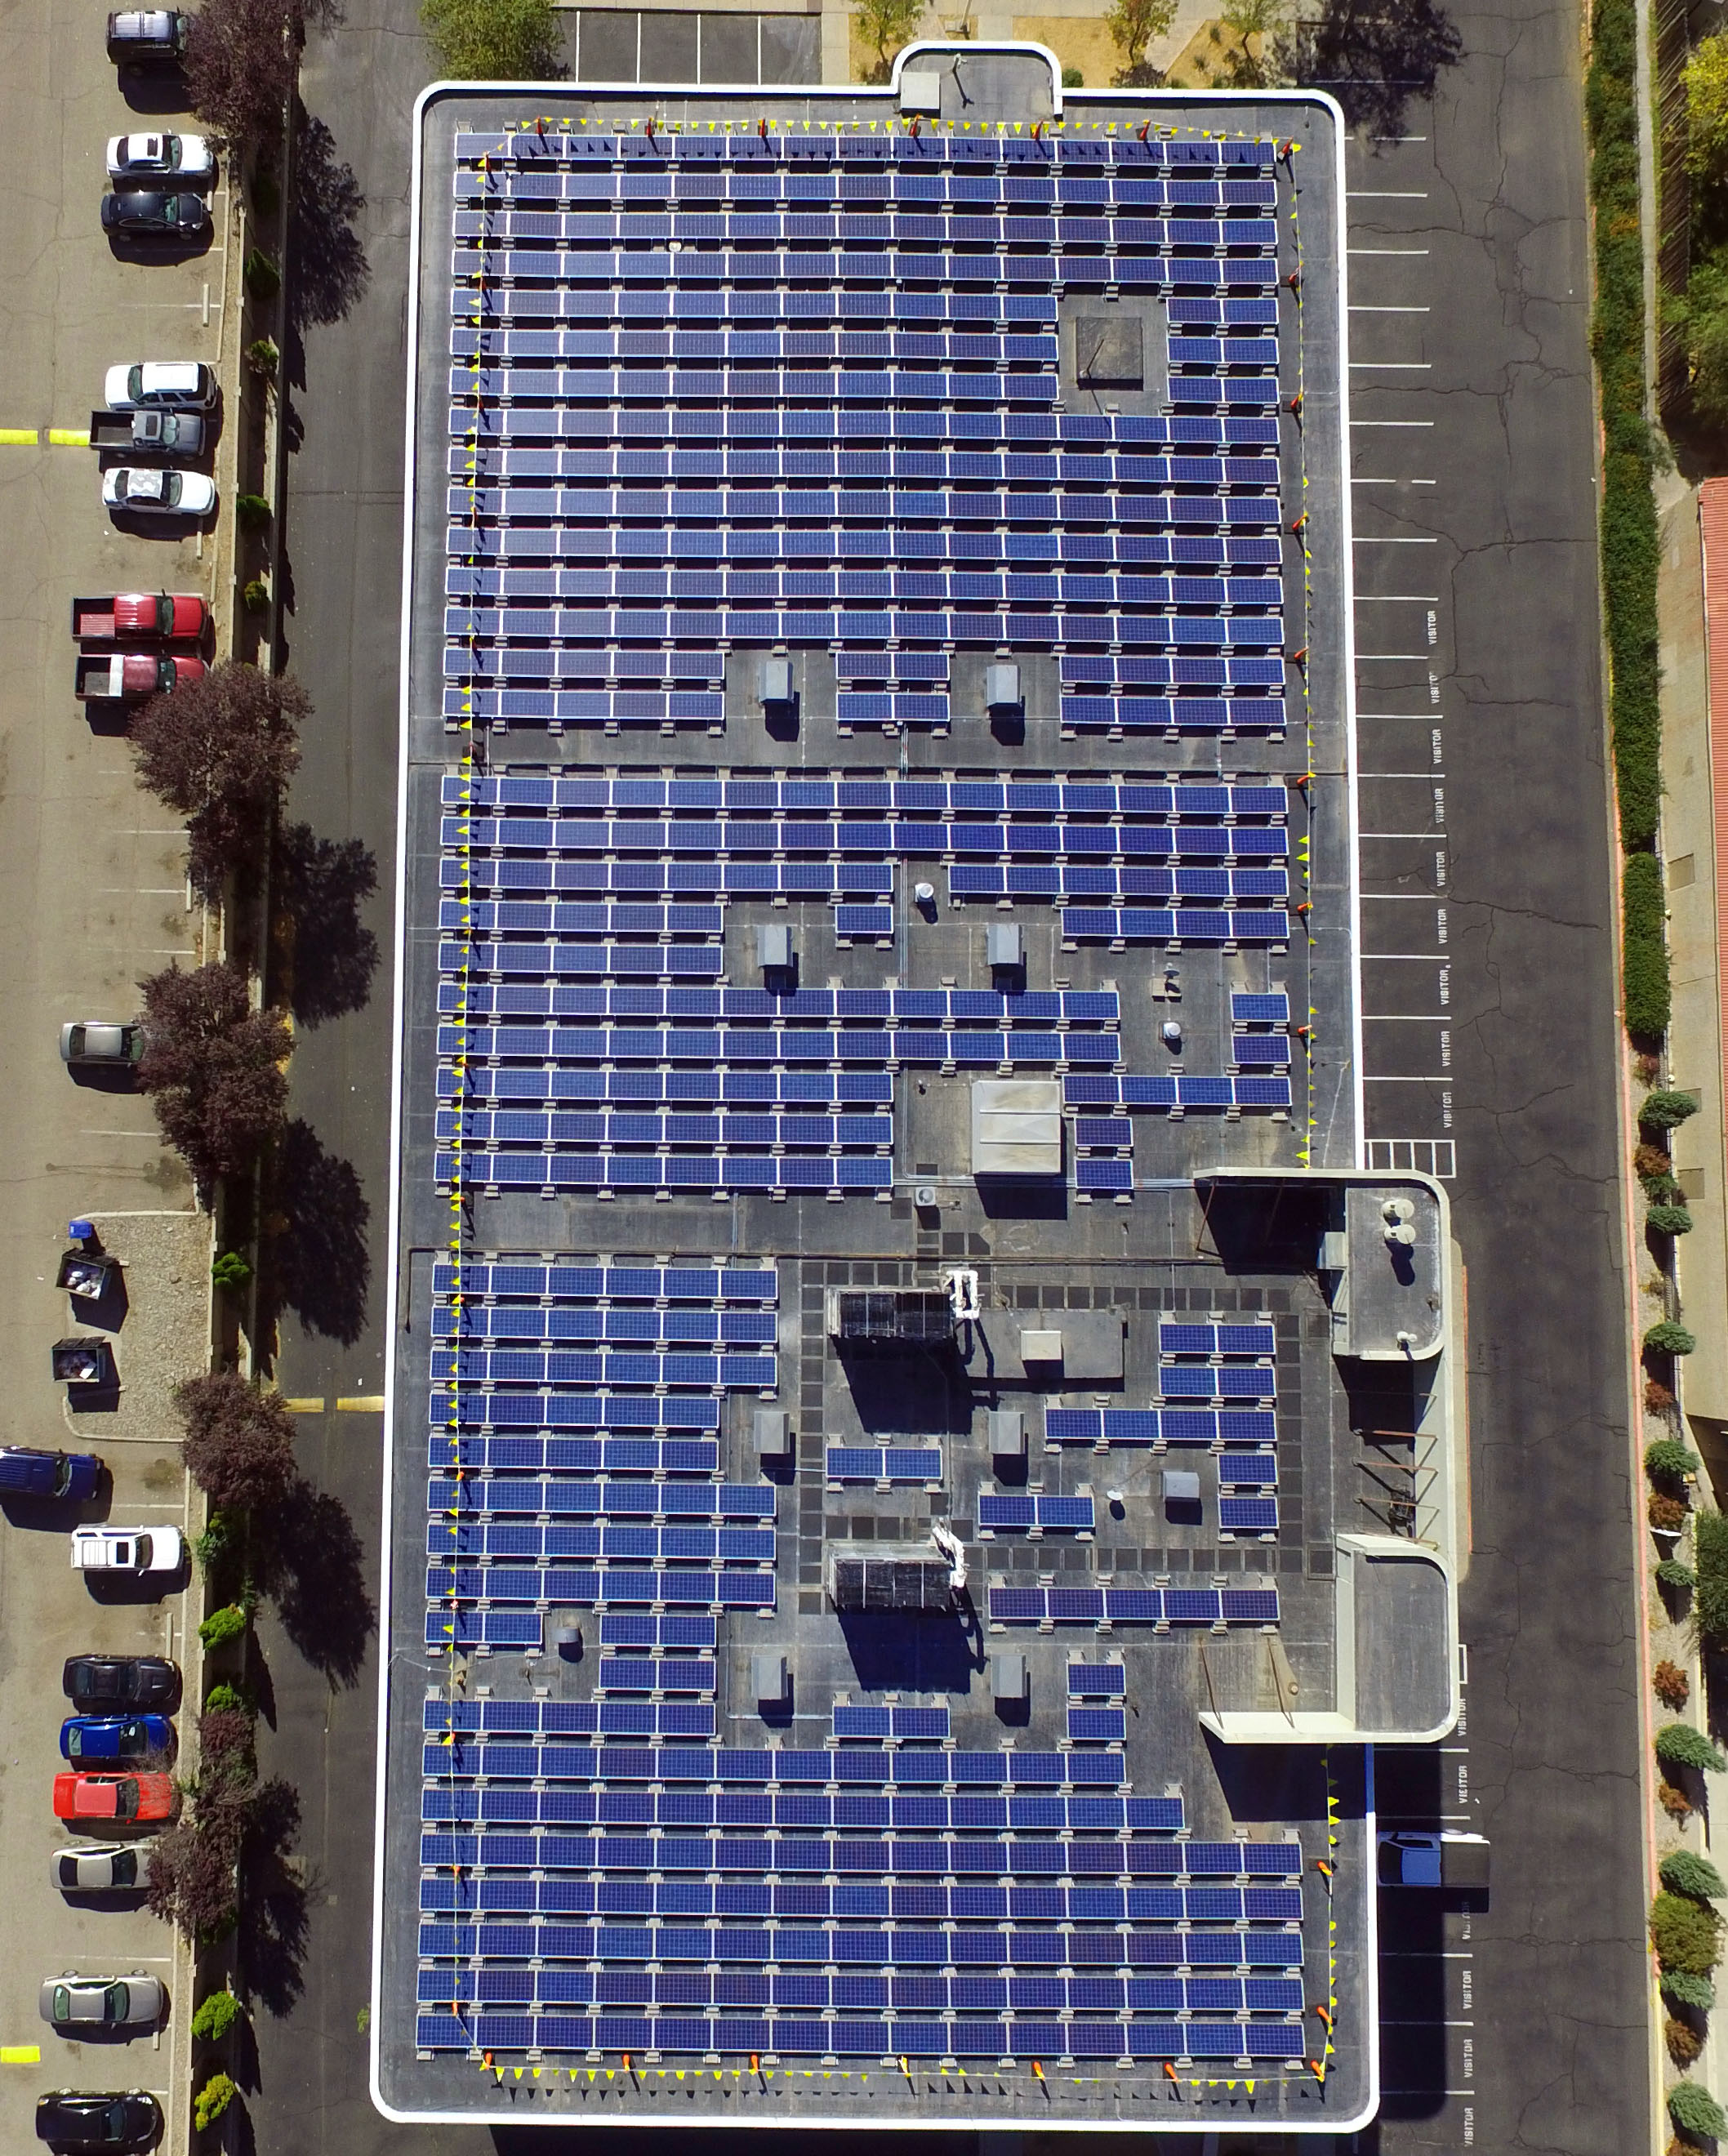 Rooftop solar power plants